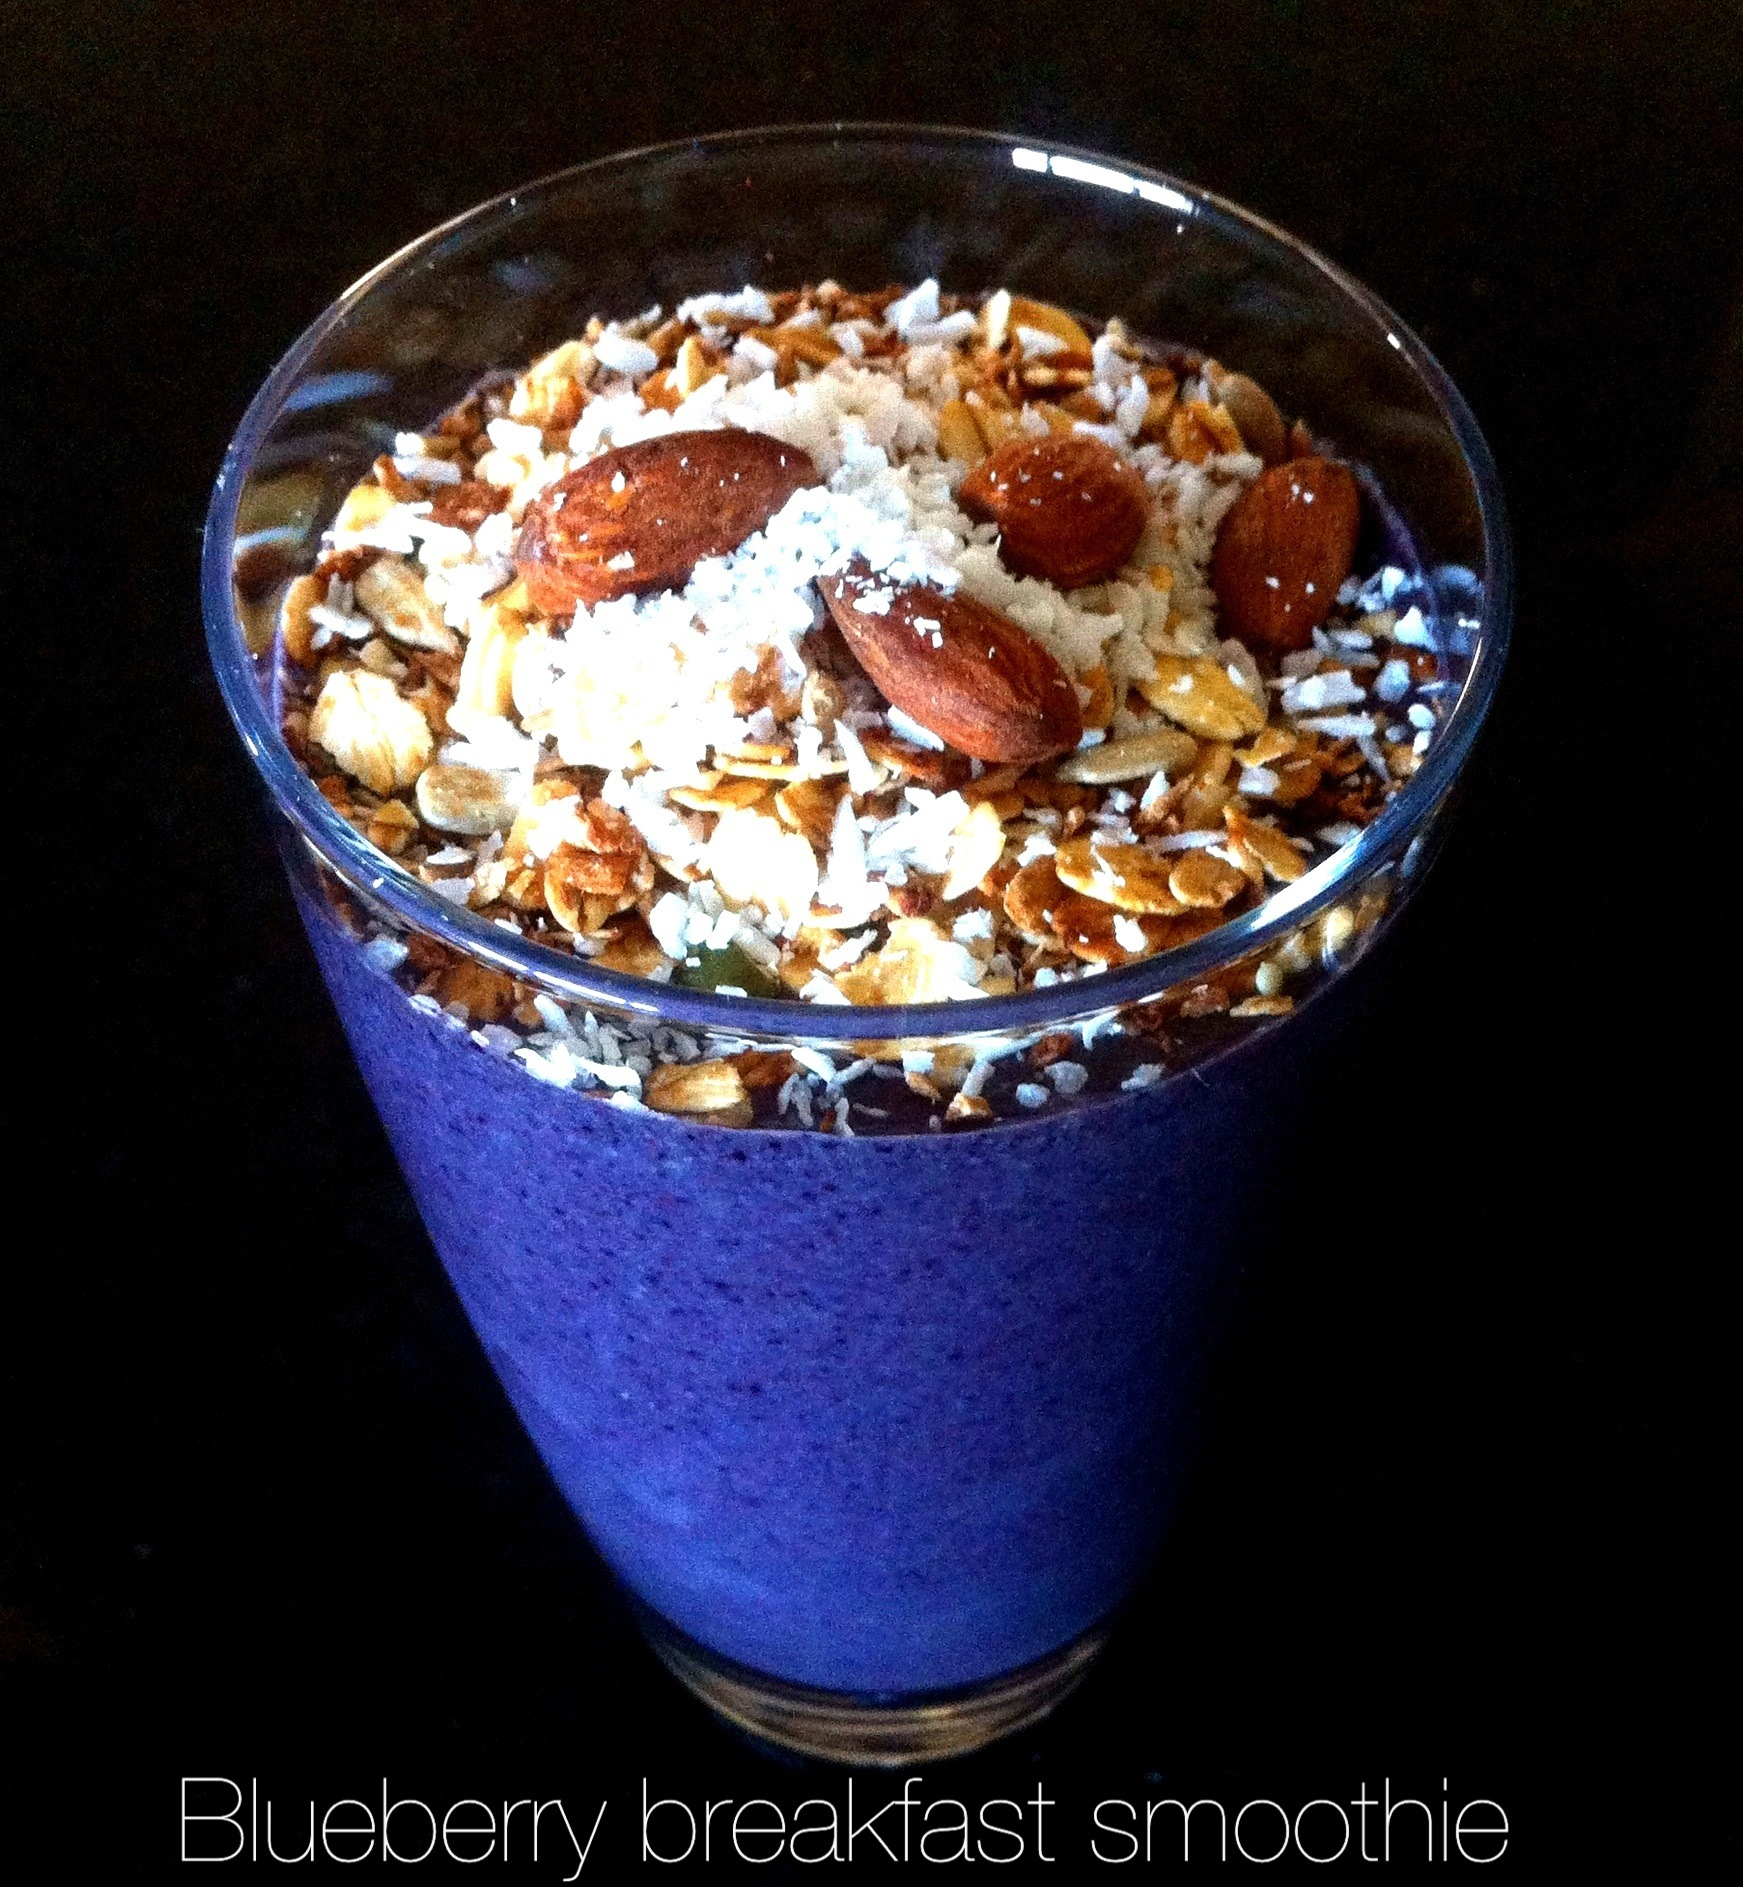 Blueberry Breakfast Smoothie | Megs And Soph